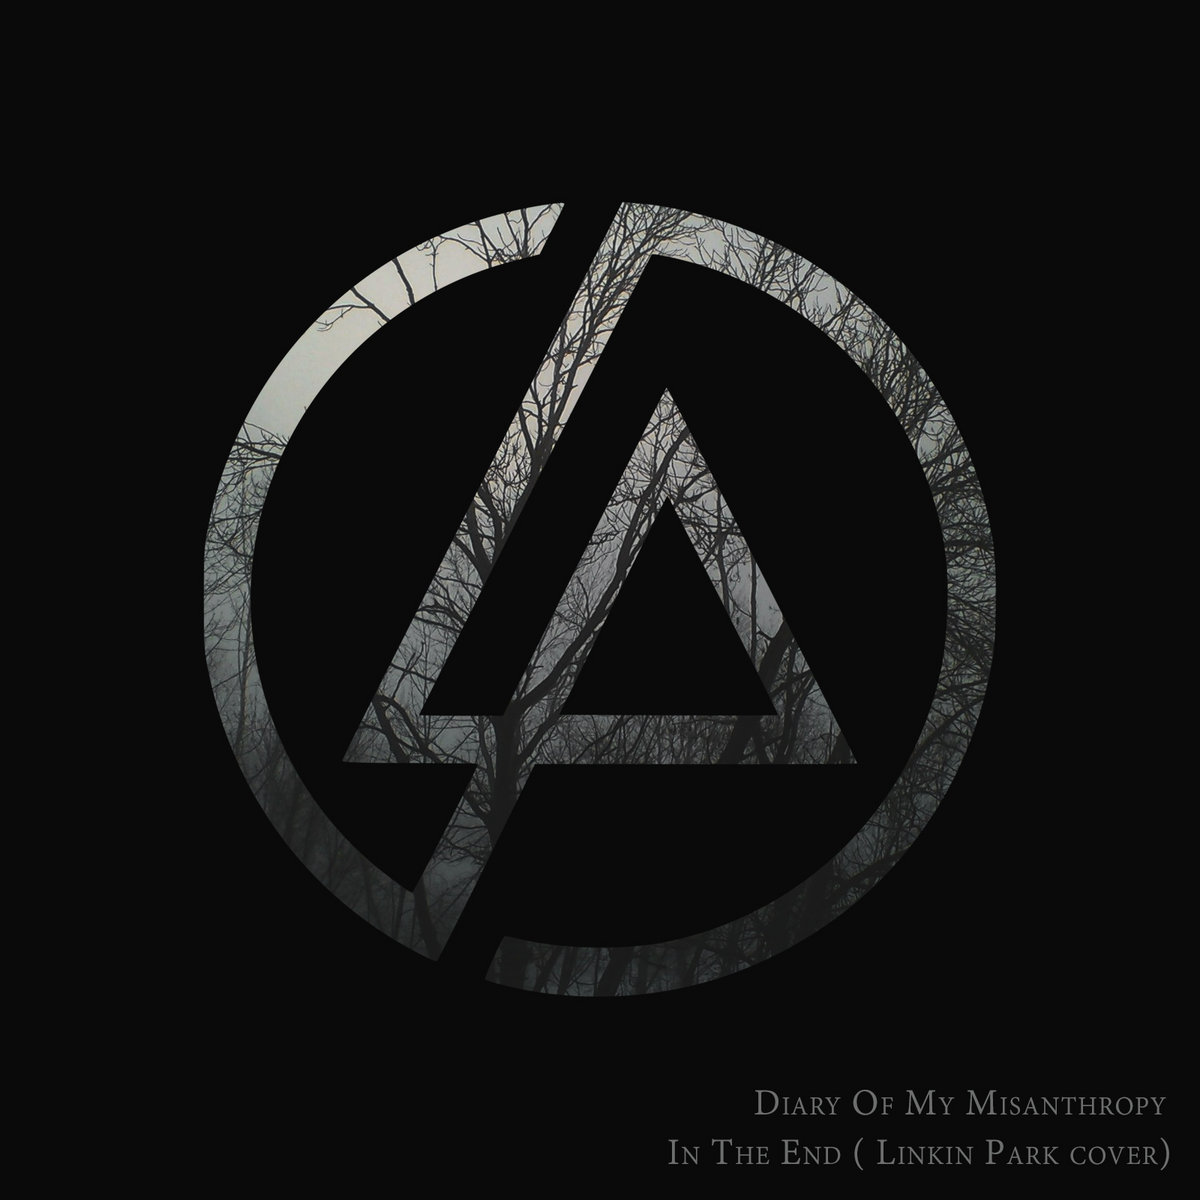 In The End Linkin Park Cover Diary Of My Misanthropy